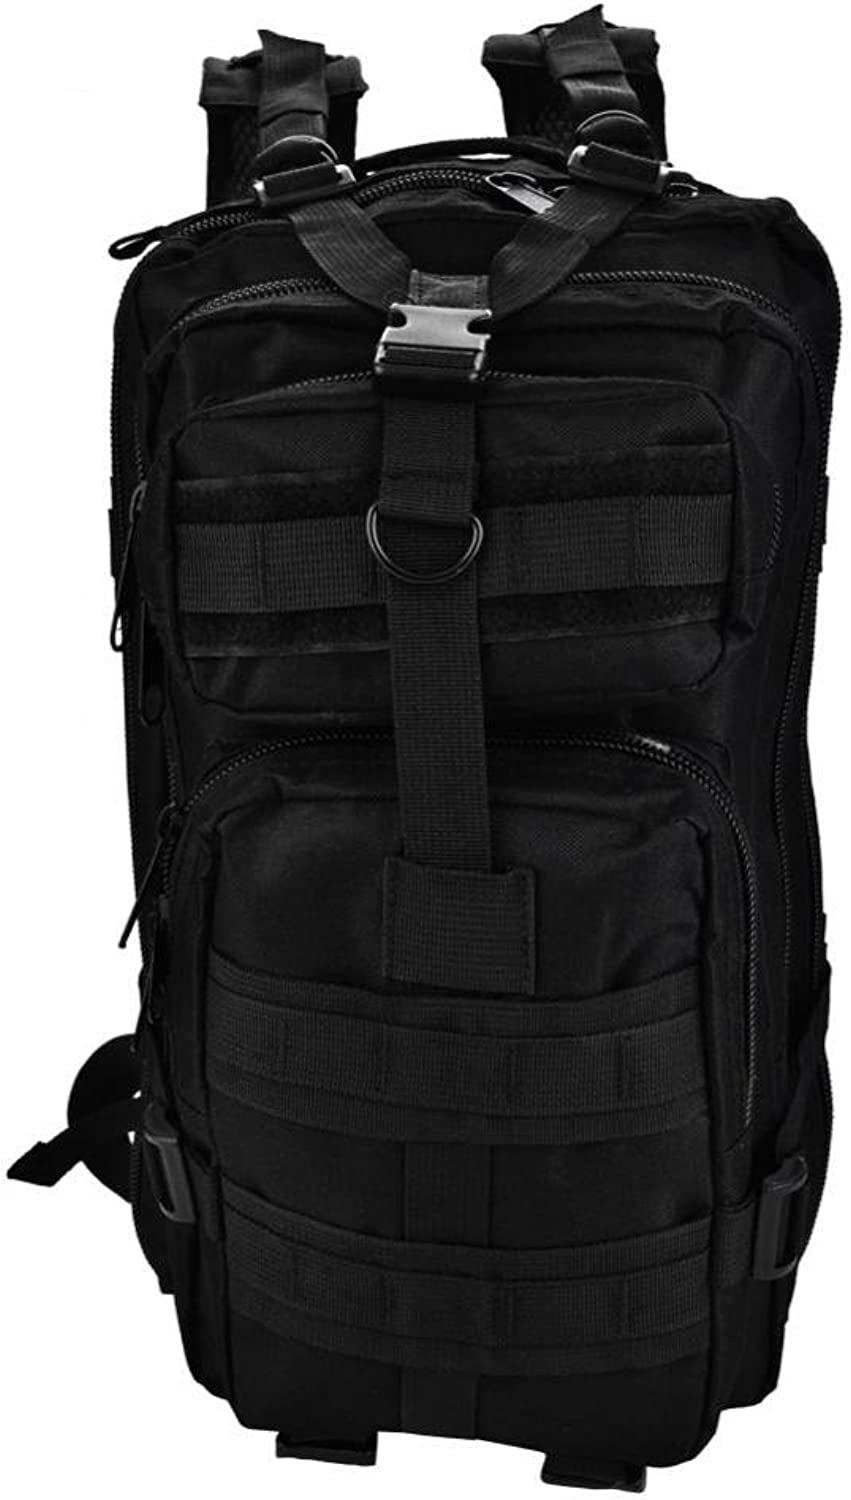 Dioche 30L Tactical Backpack, 2Farbes Multifunktions 30L Militr Rucksack Umhngetasche für Outdoor Sports Camping Wandern